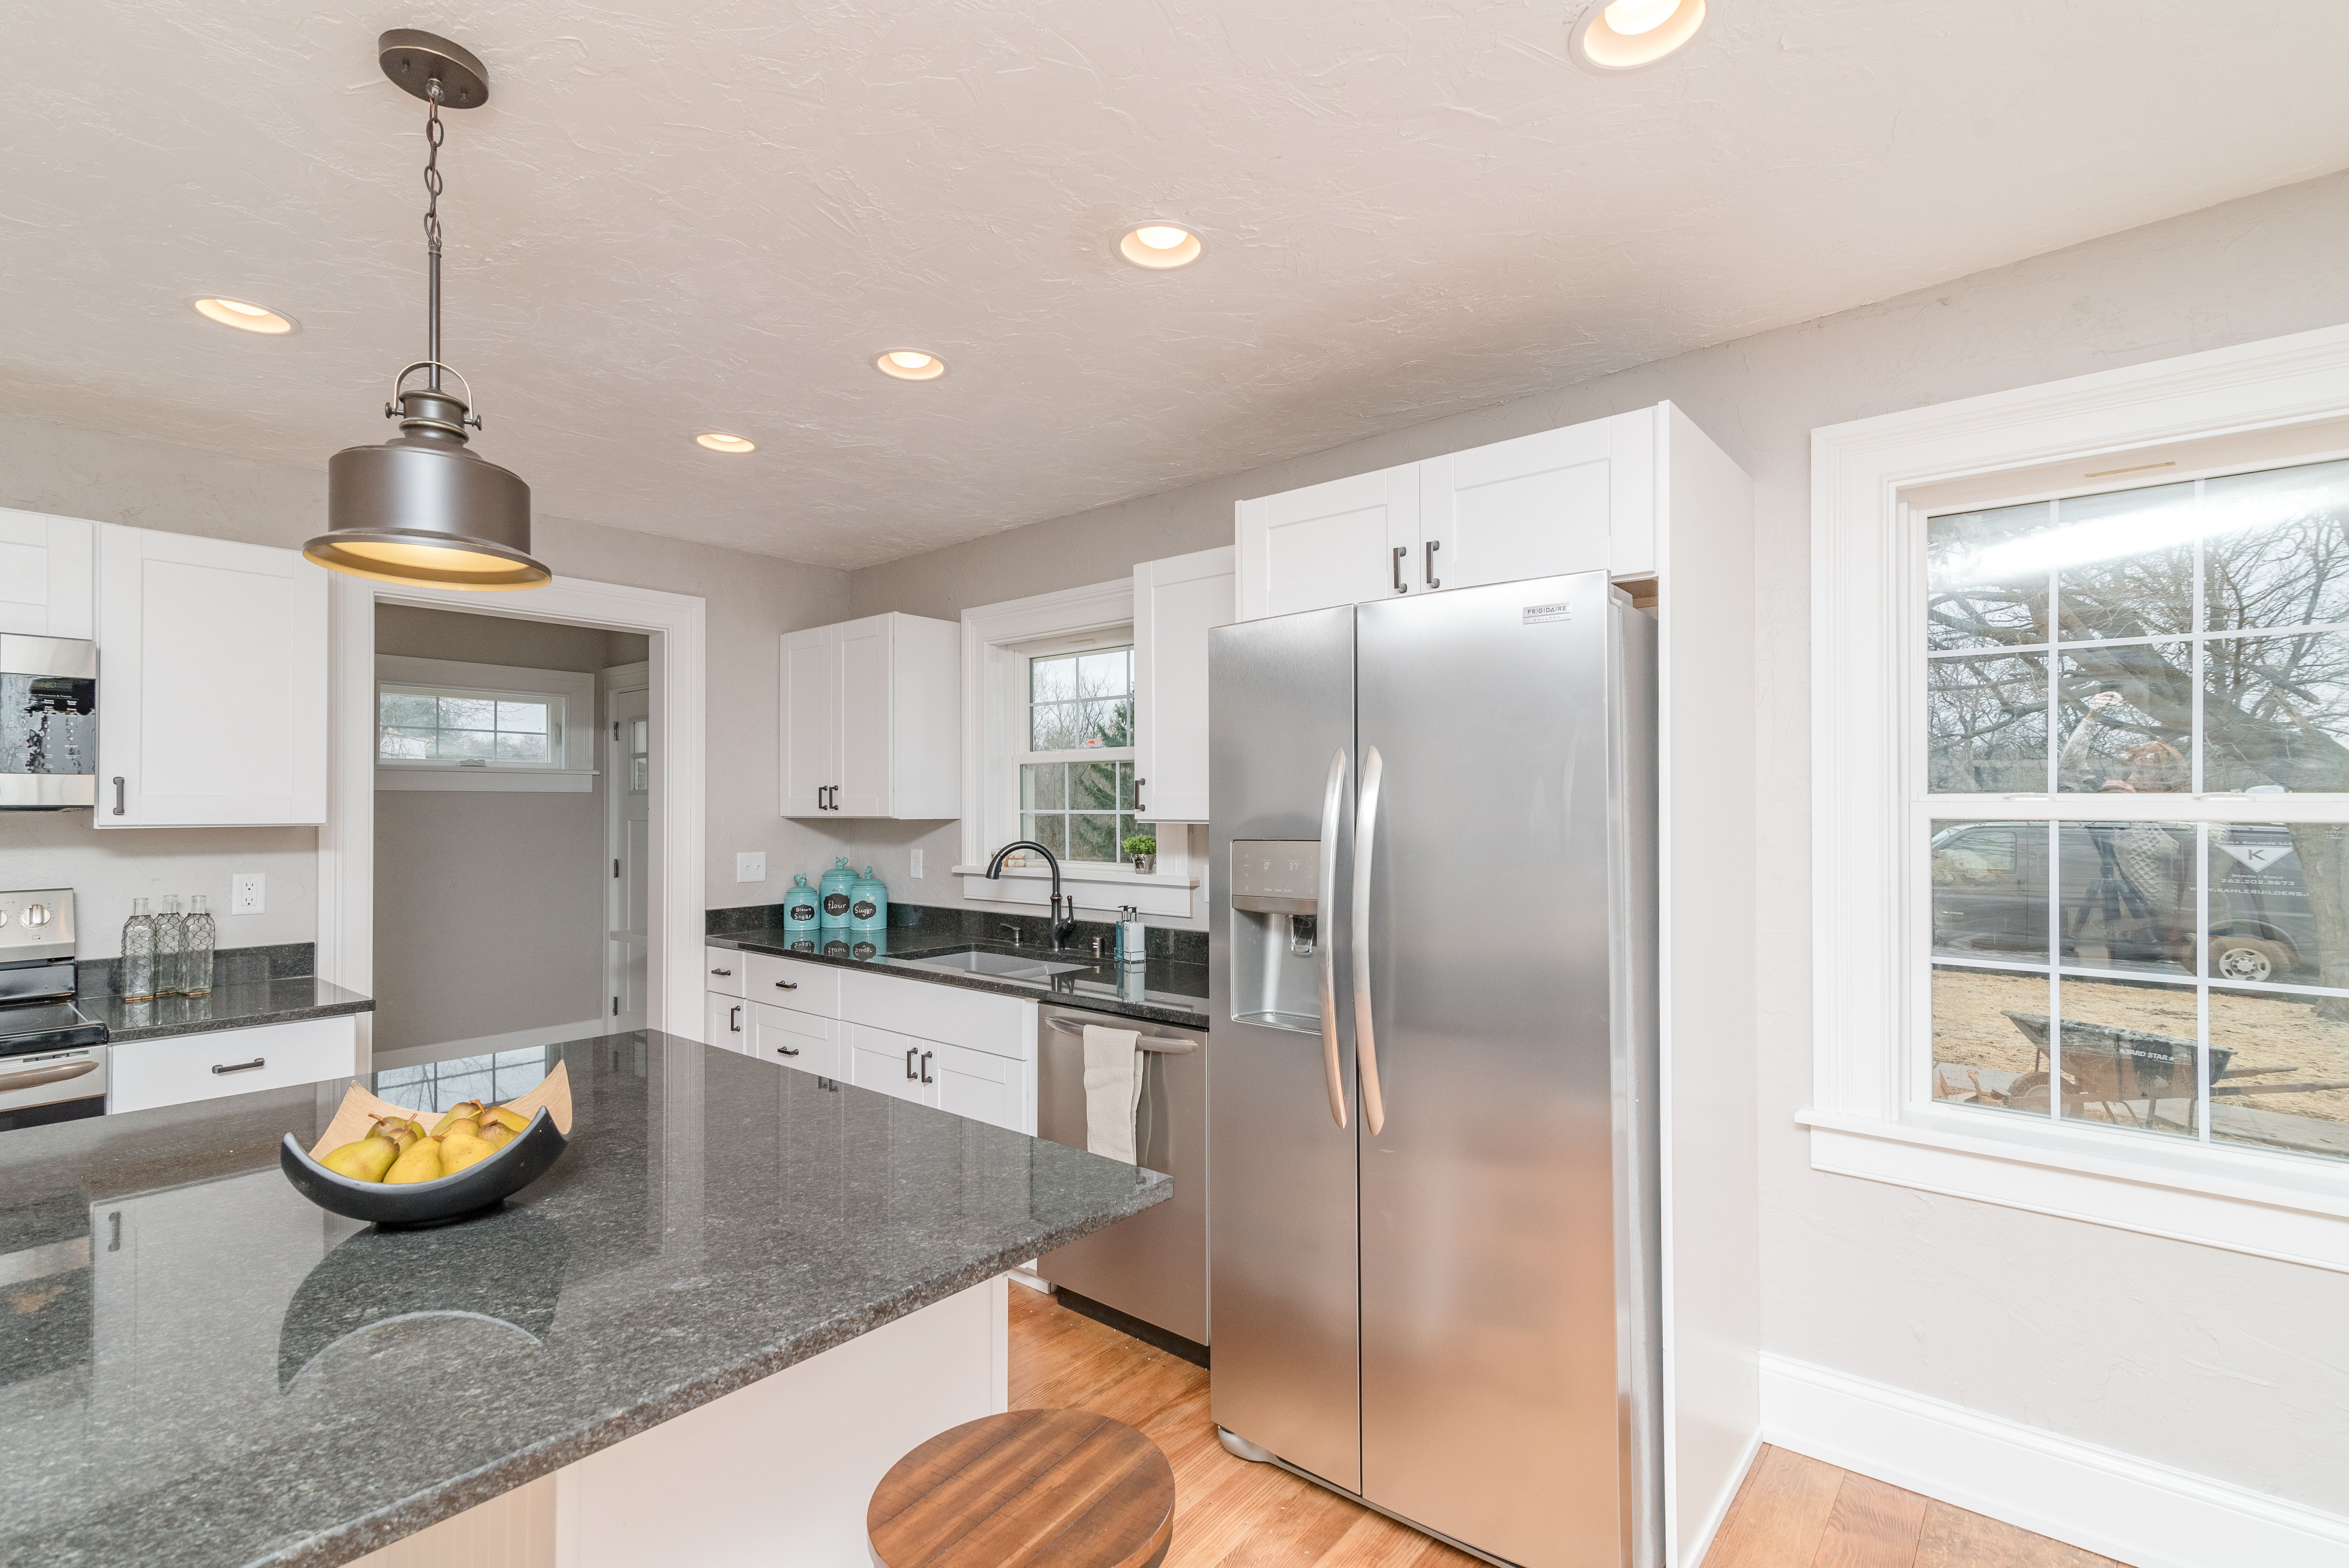 Kitchen space with black granite countertops and white